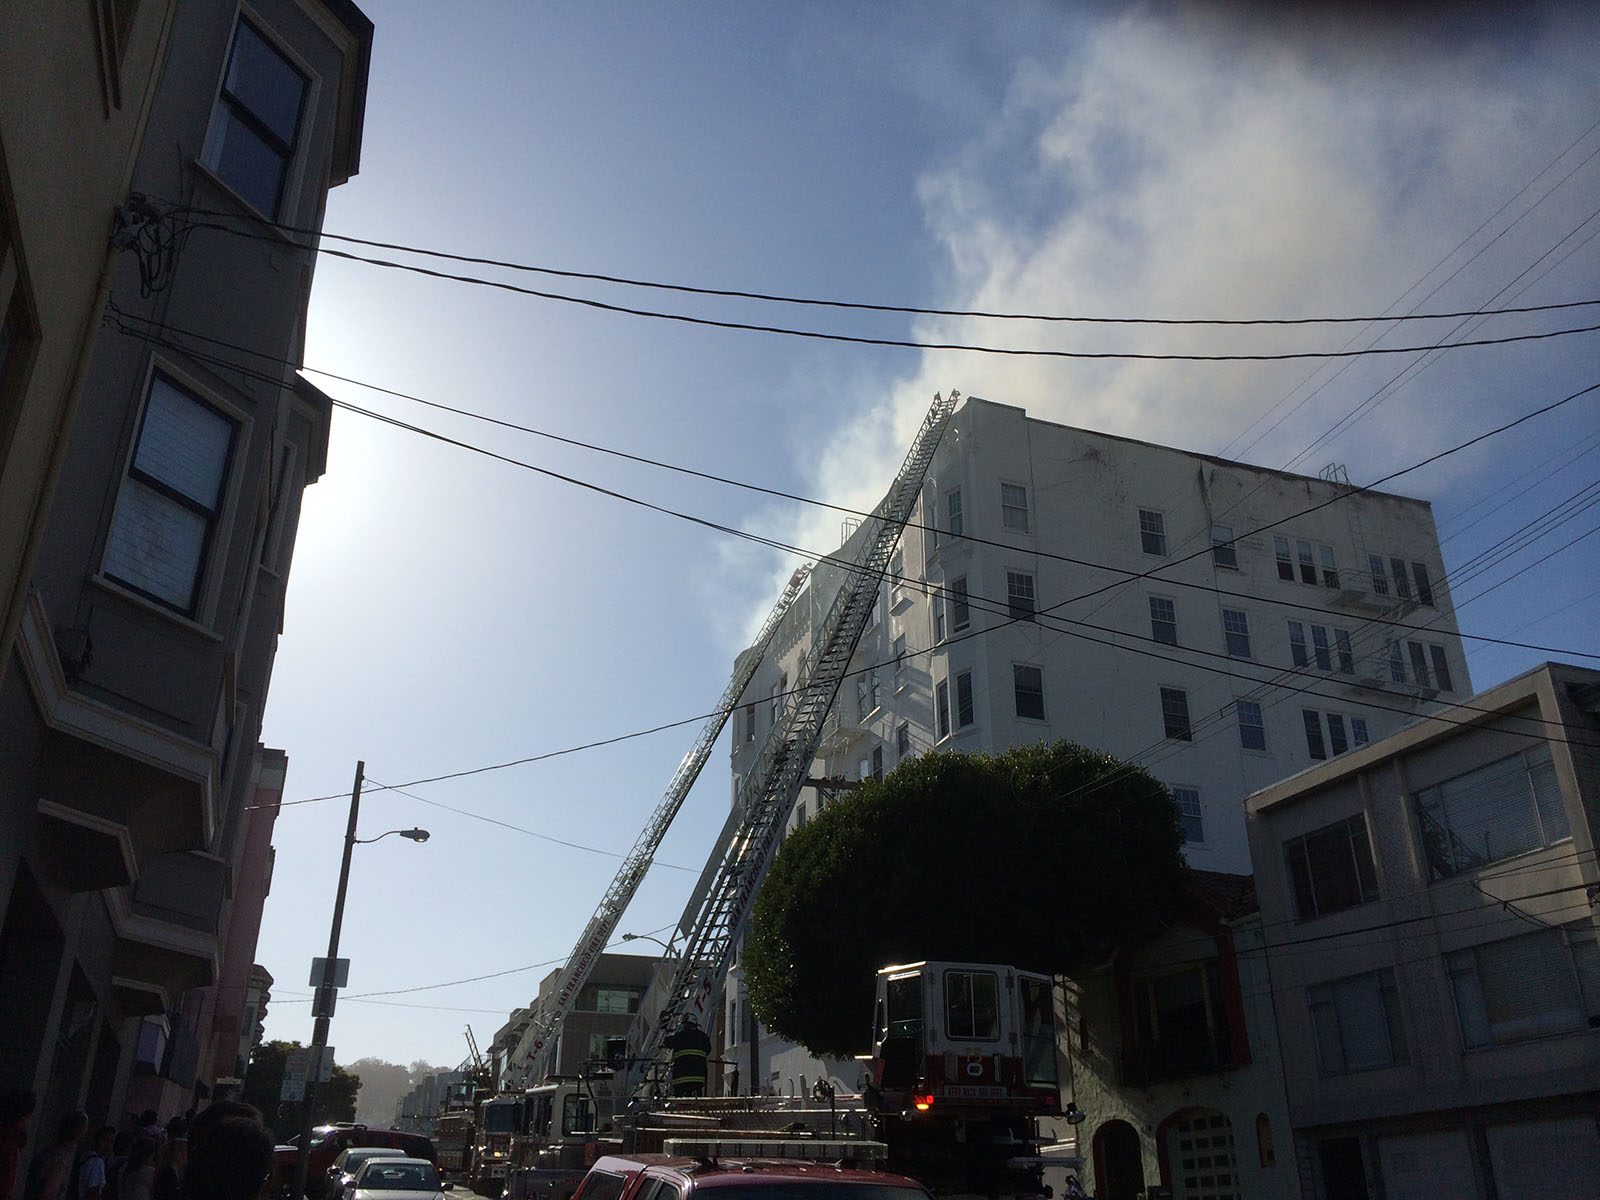 Firefighters have placed ladders on the side of the building on 14th and Dolores. Photo by Mark Rabine.